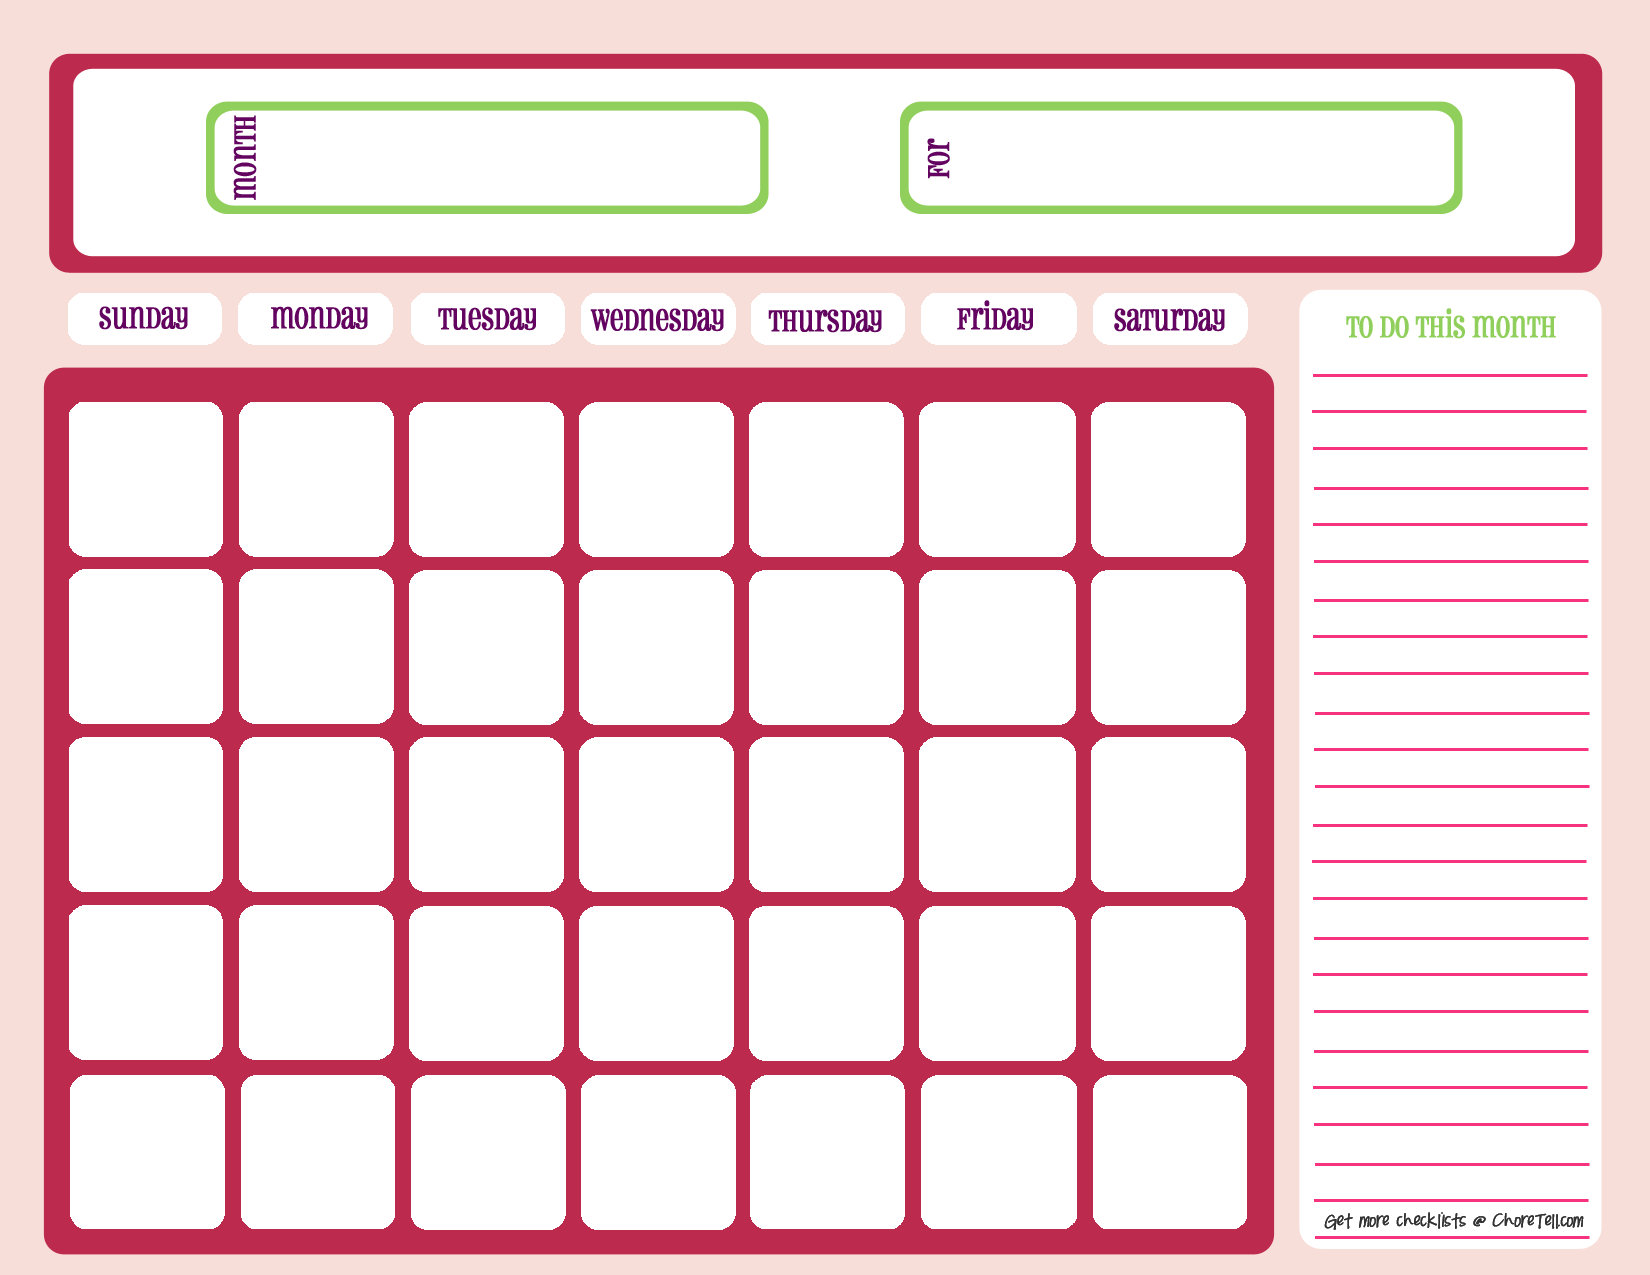 Blank Month Calendar - Pinks - Free Printable Downloads From Choretell pertaining to Cute Blank Monthly Calendar Template